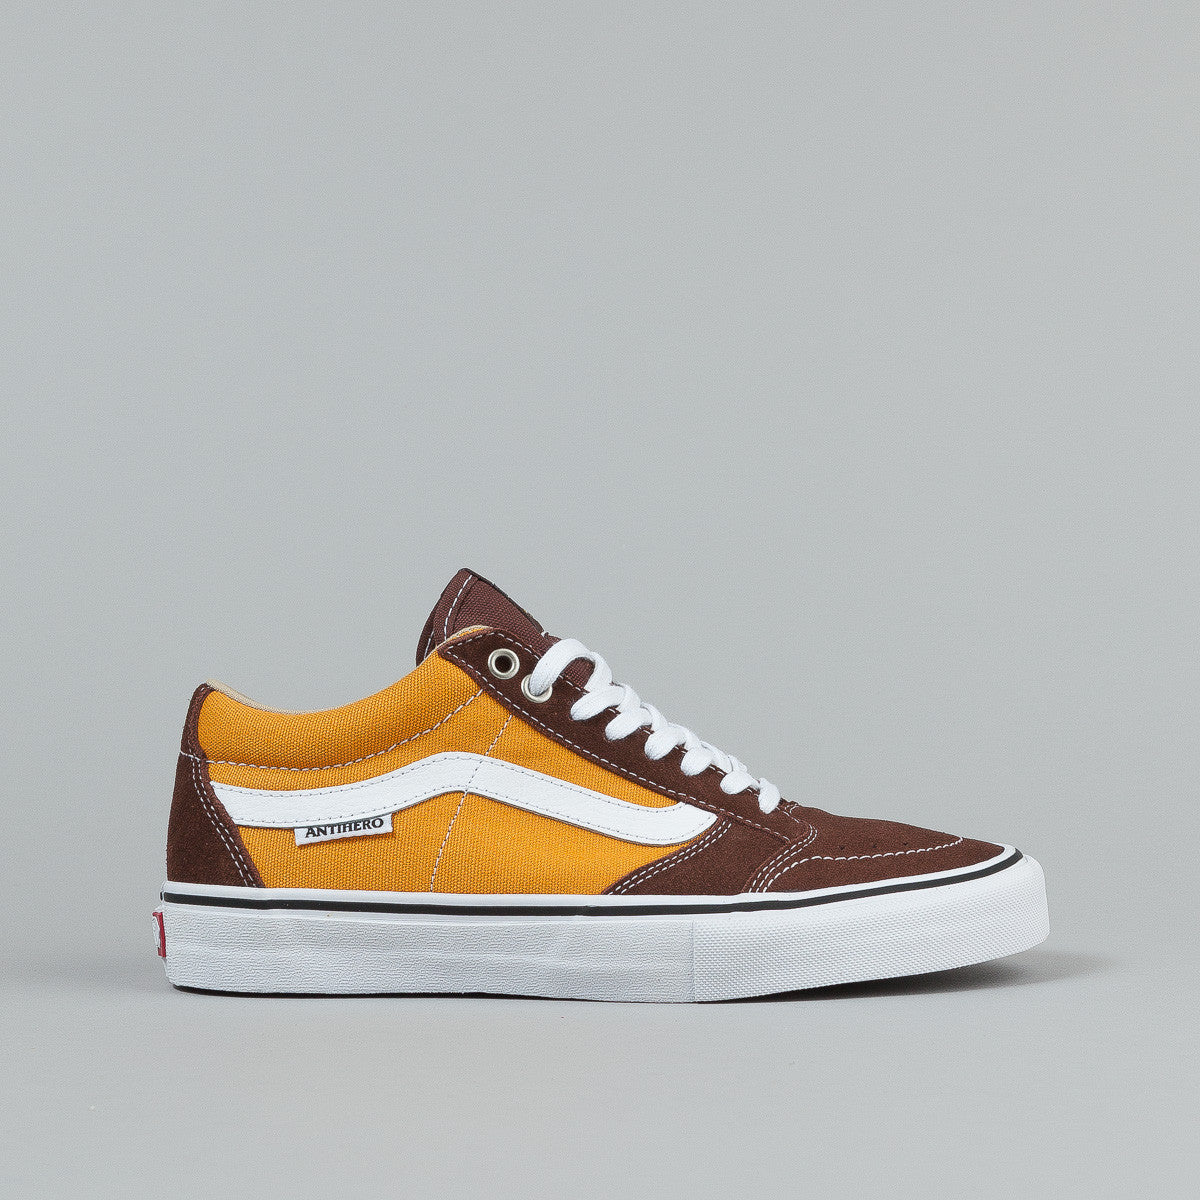 Vans X Antihero TNT SG Shoes